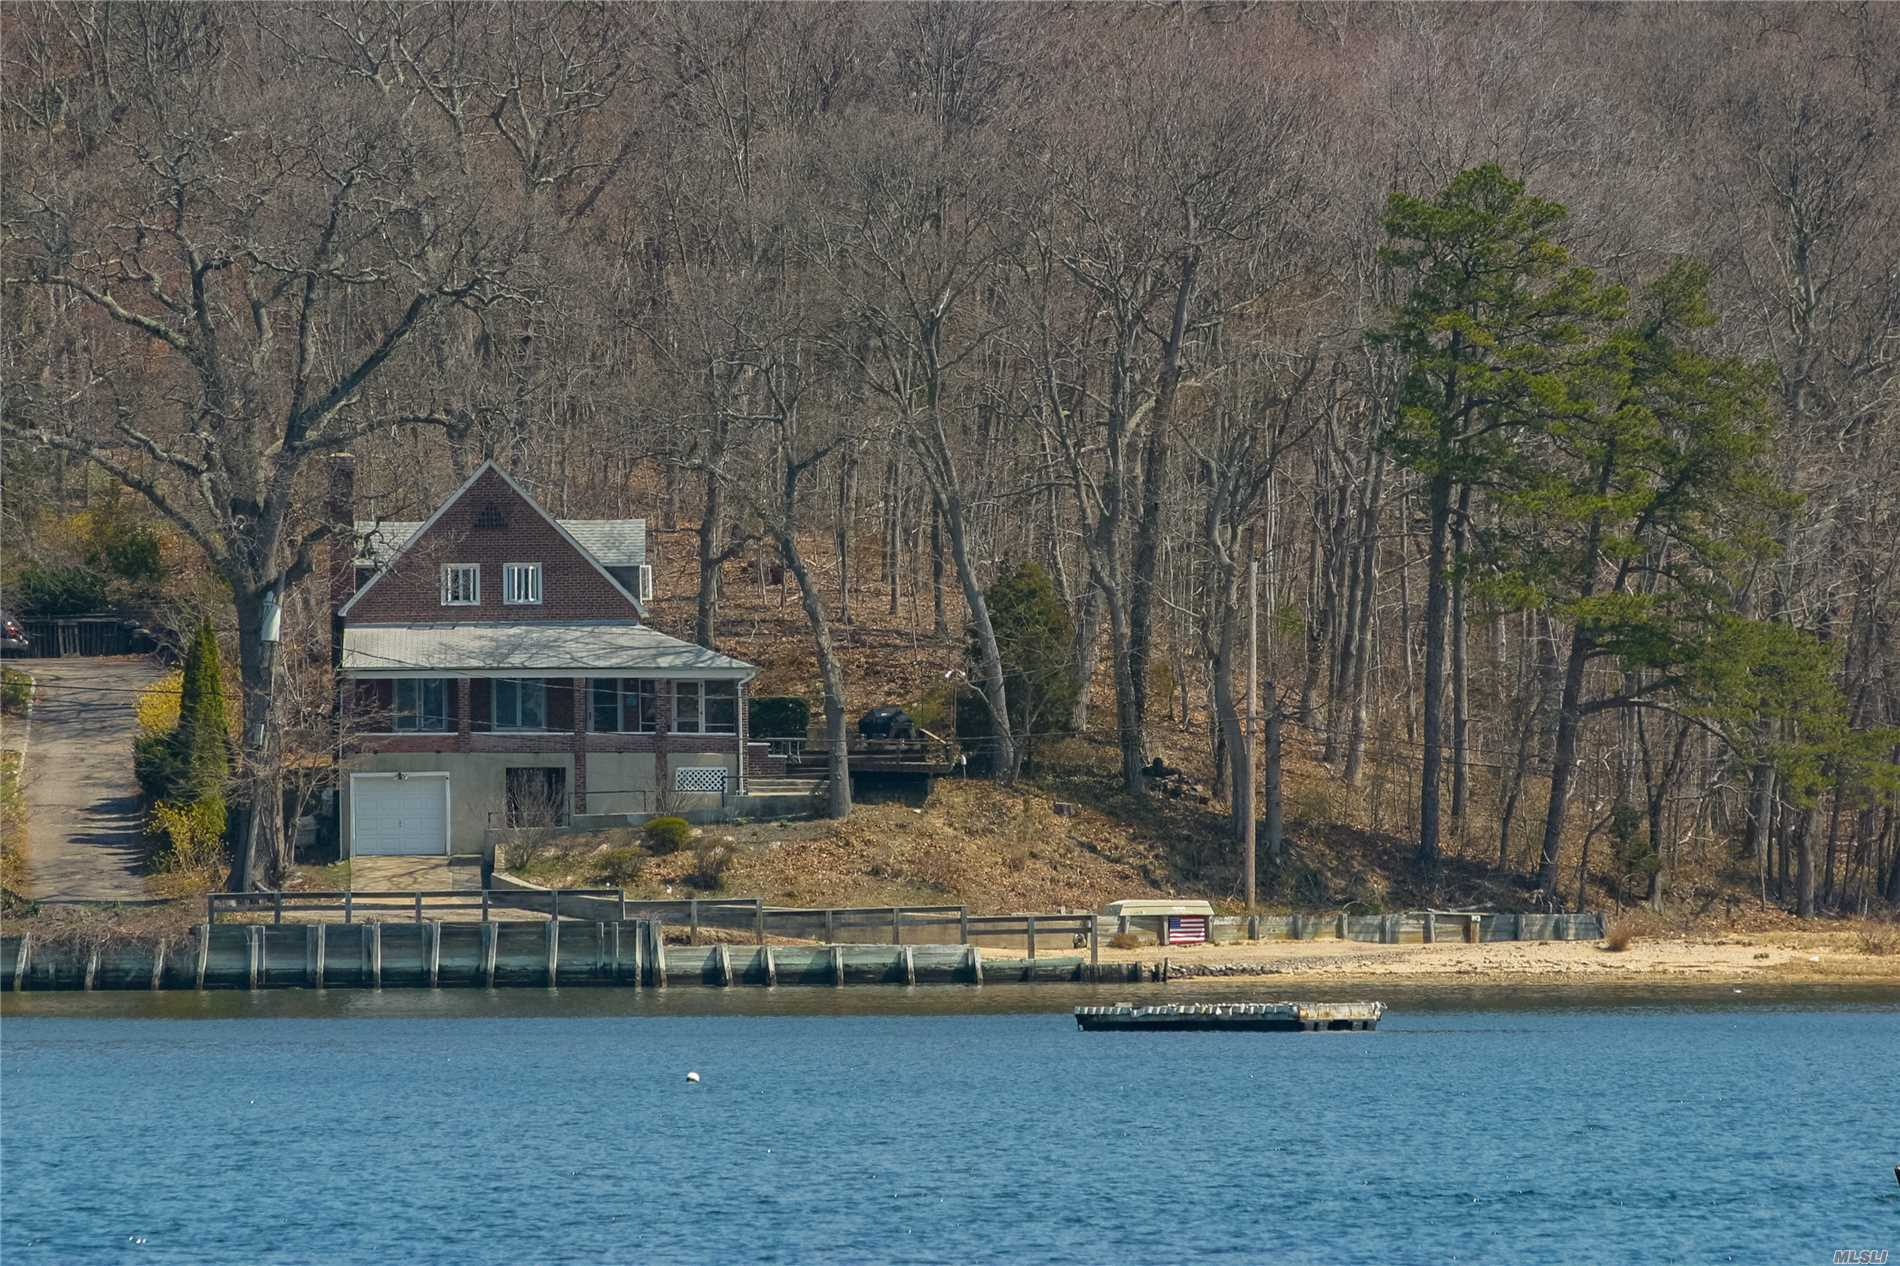 Rare Opportunity To Renovate/Expand/Build New Waterfront Home- Panoramic Western Views Of Centerport Harbor. 4-Br House On Property. 2 Lots= 1.88 Ac W/ 280-Ft Of Waterfront And Beach. Not Subdividable. *** Do Not Drive Thru Pillars At End Of Prospect Rd ***